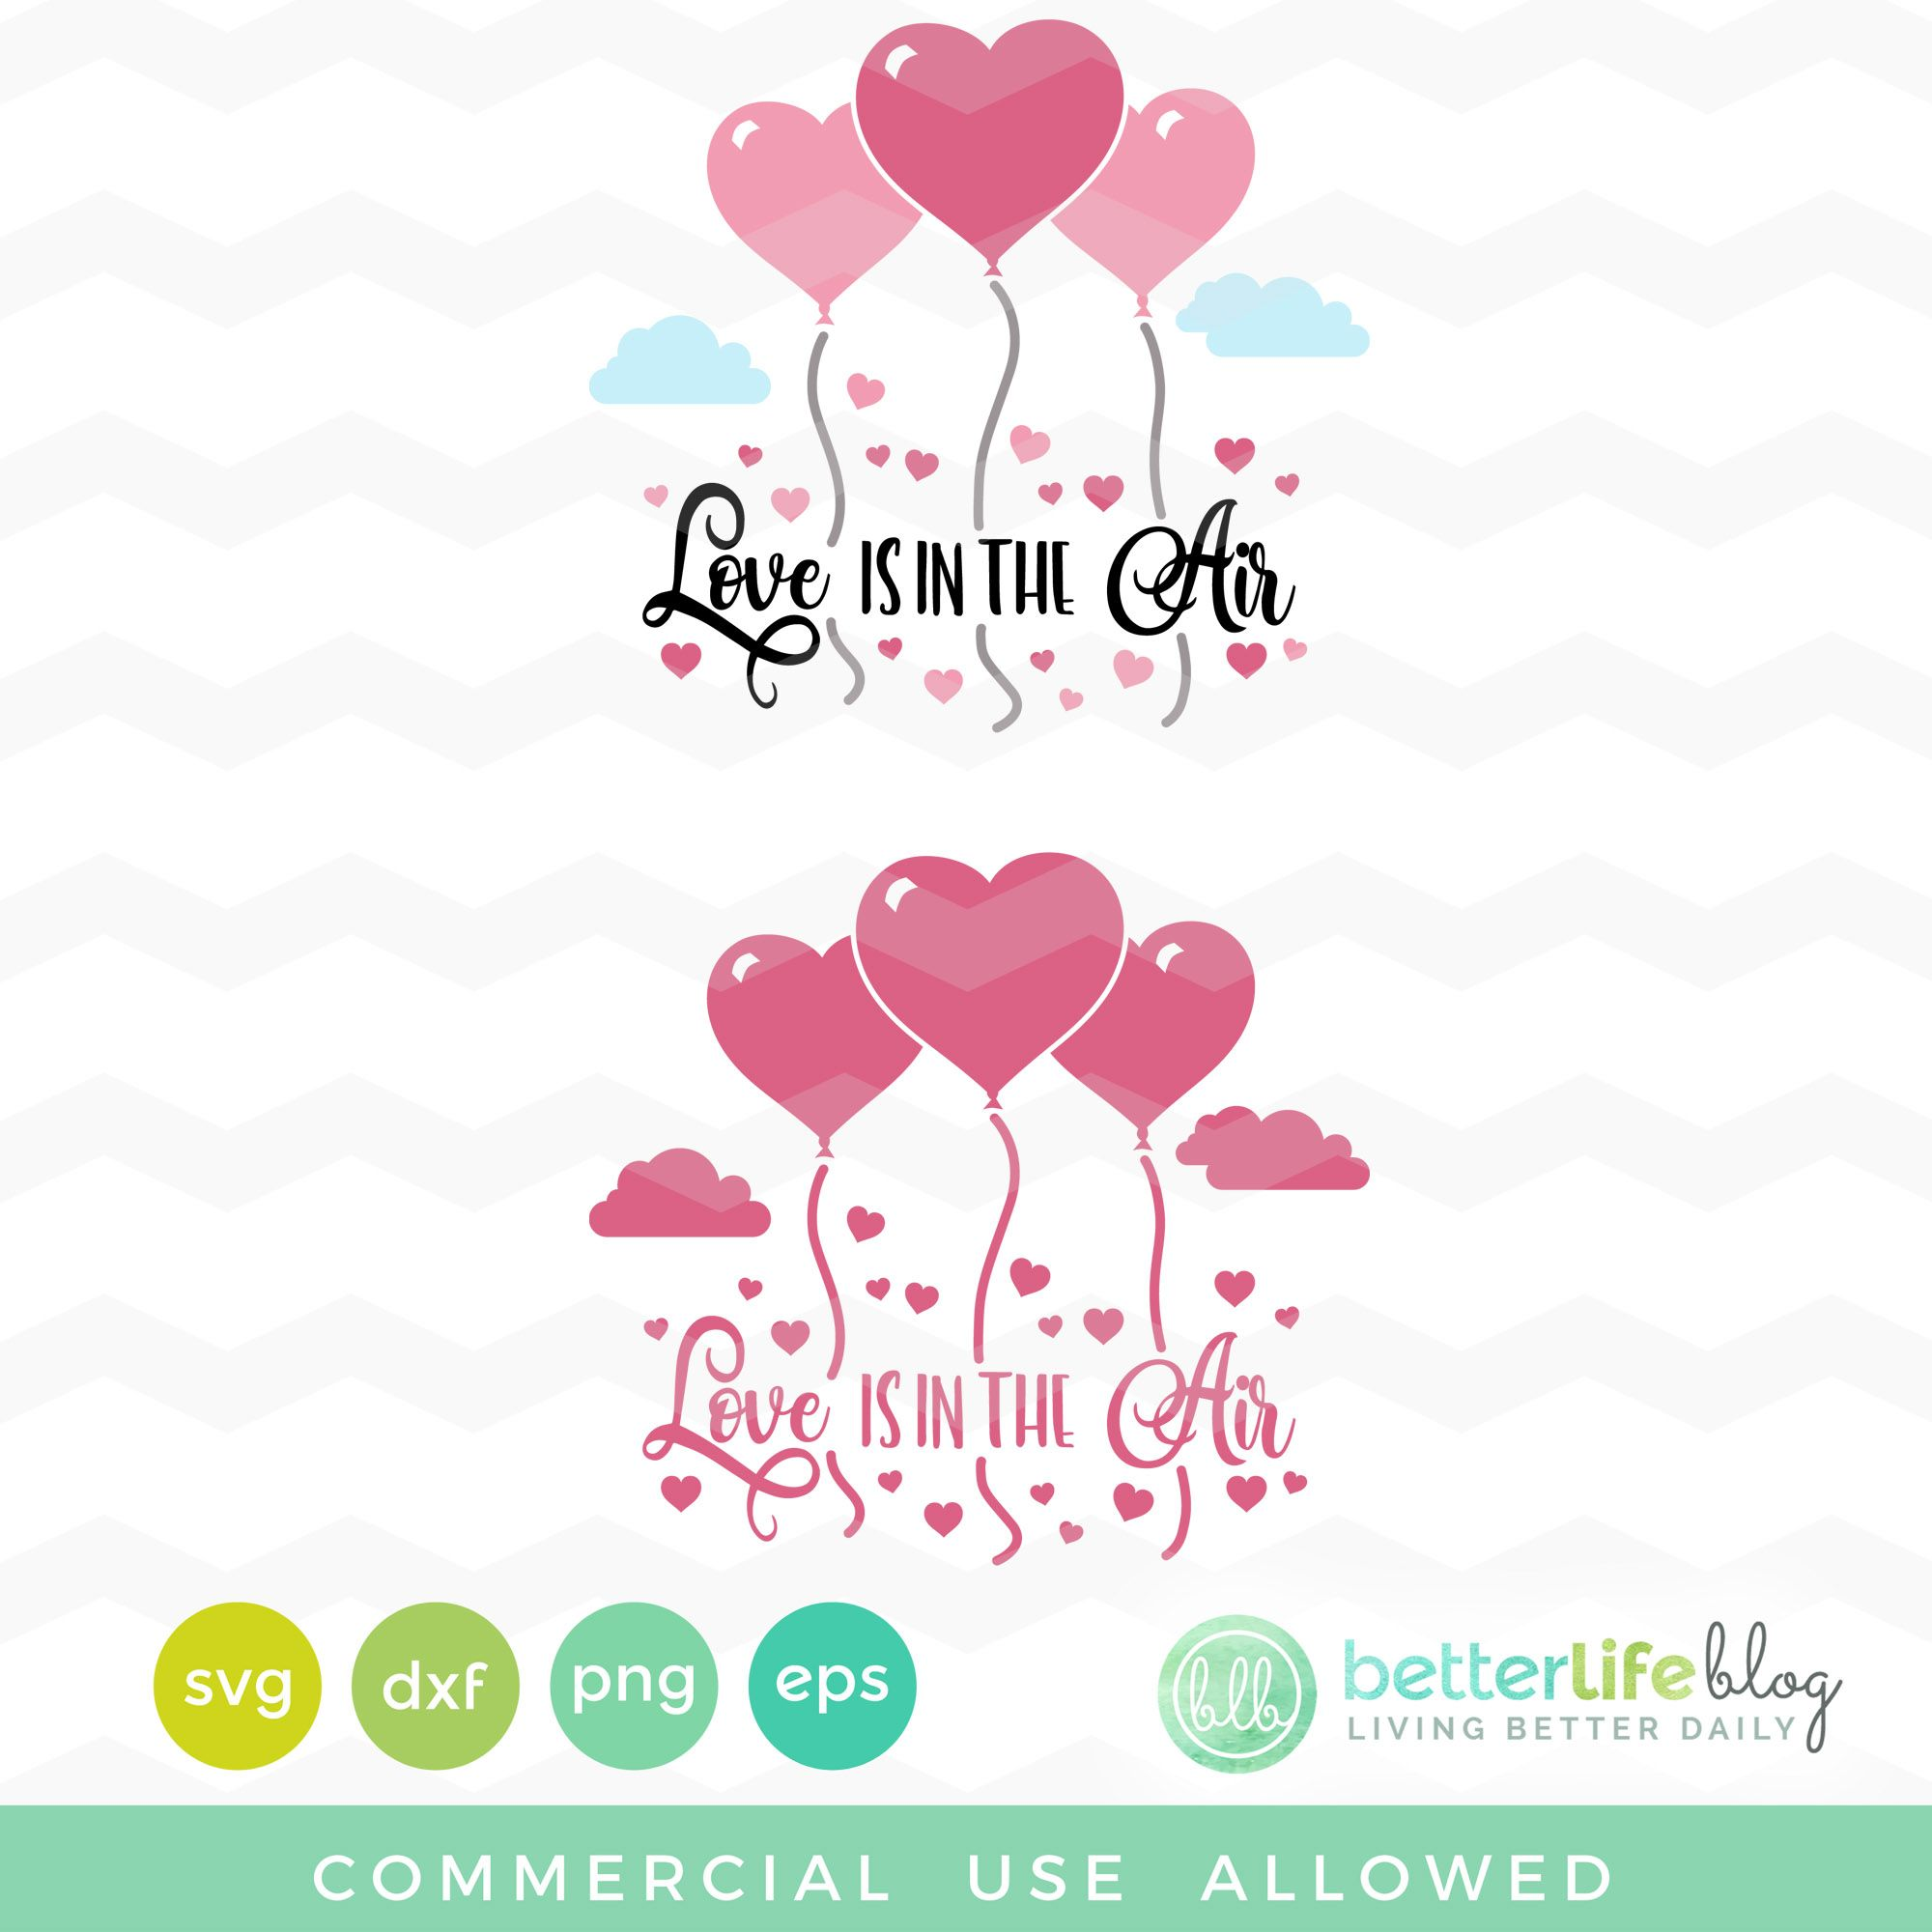 Download Love is in the Air SVG File | Cricut, Svg file, Cricut vinyl